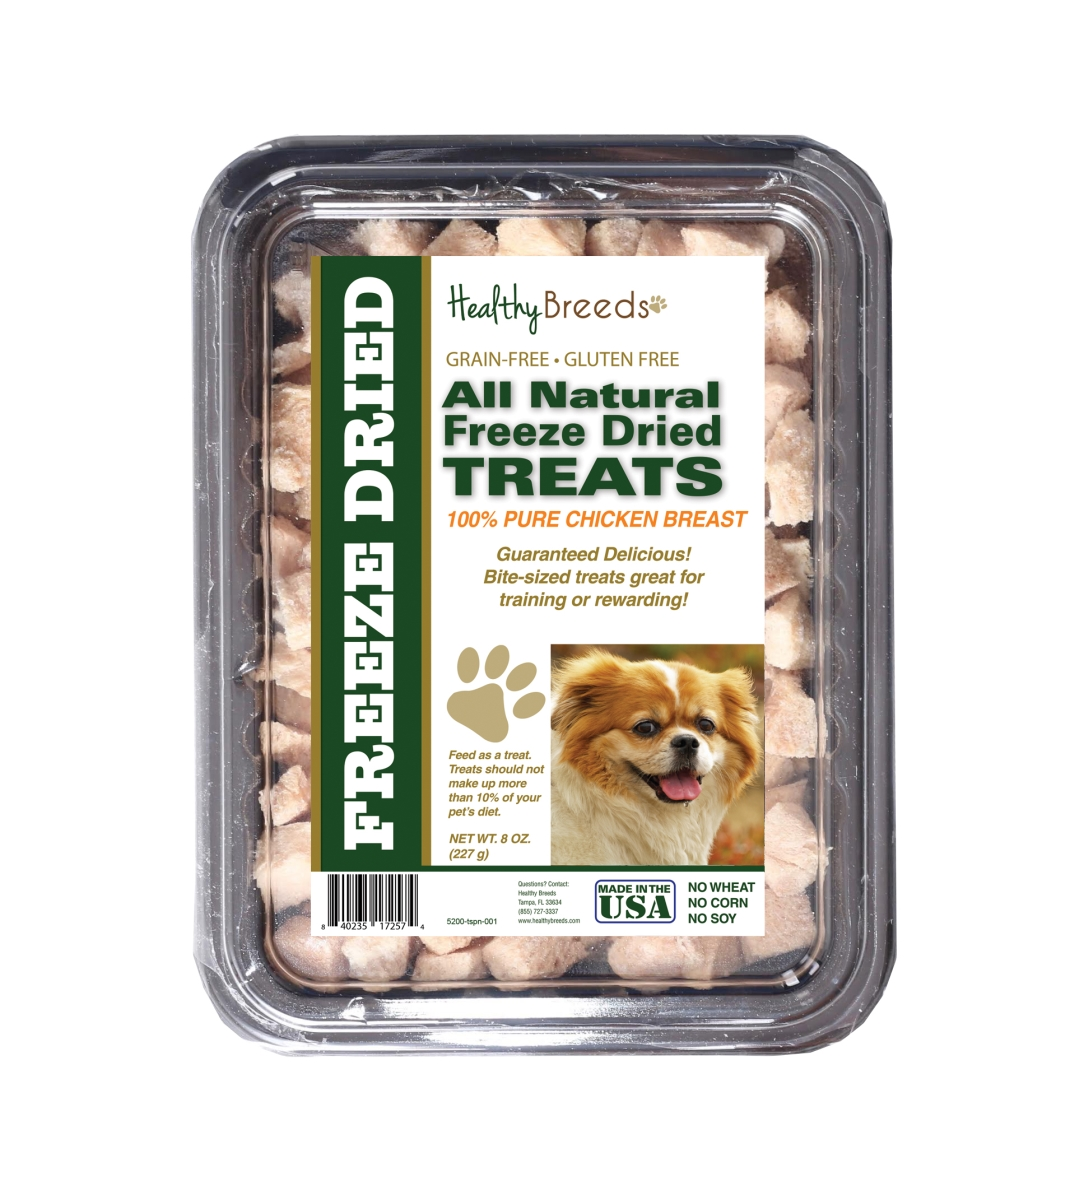 Healthy Breeds 840235172574 8 oz Tibetan Mastiff All Natural Freeze Dried Treats Chicken Breast